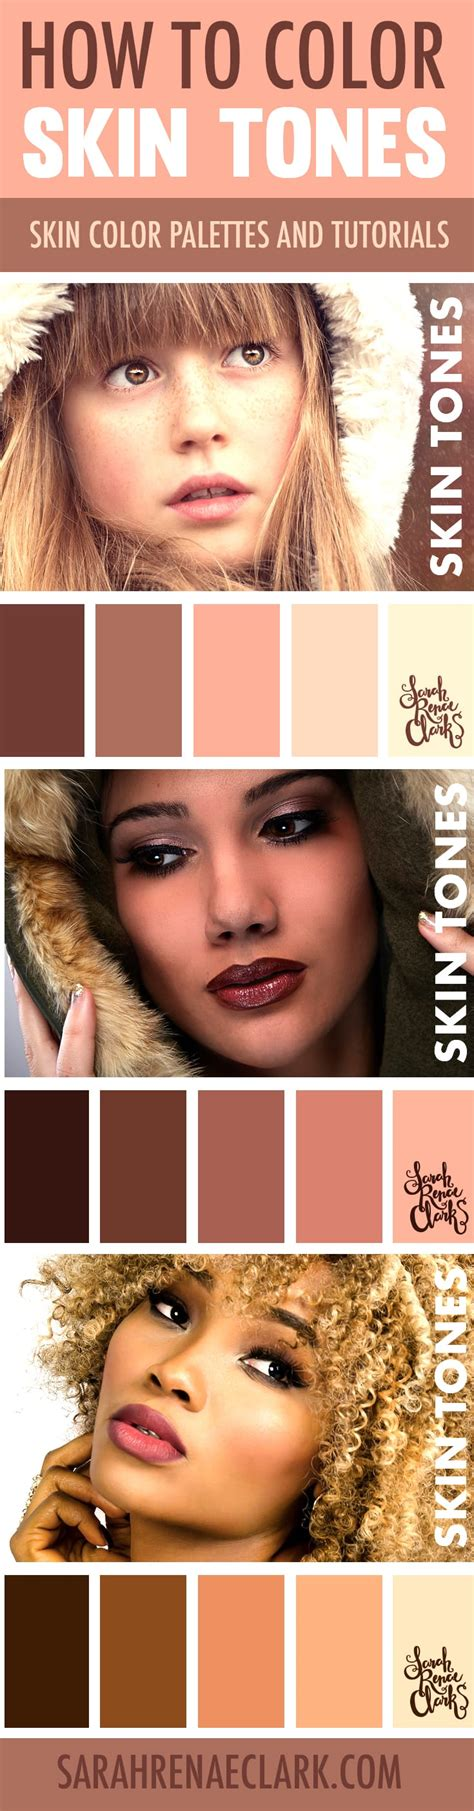 how to color skin how to color skin tones 10 tutorials on skin